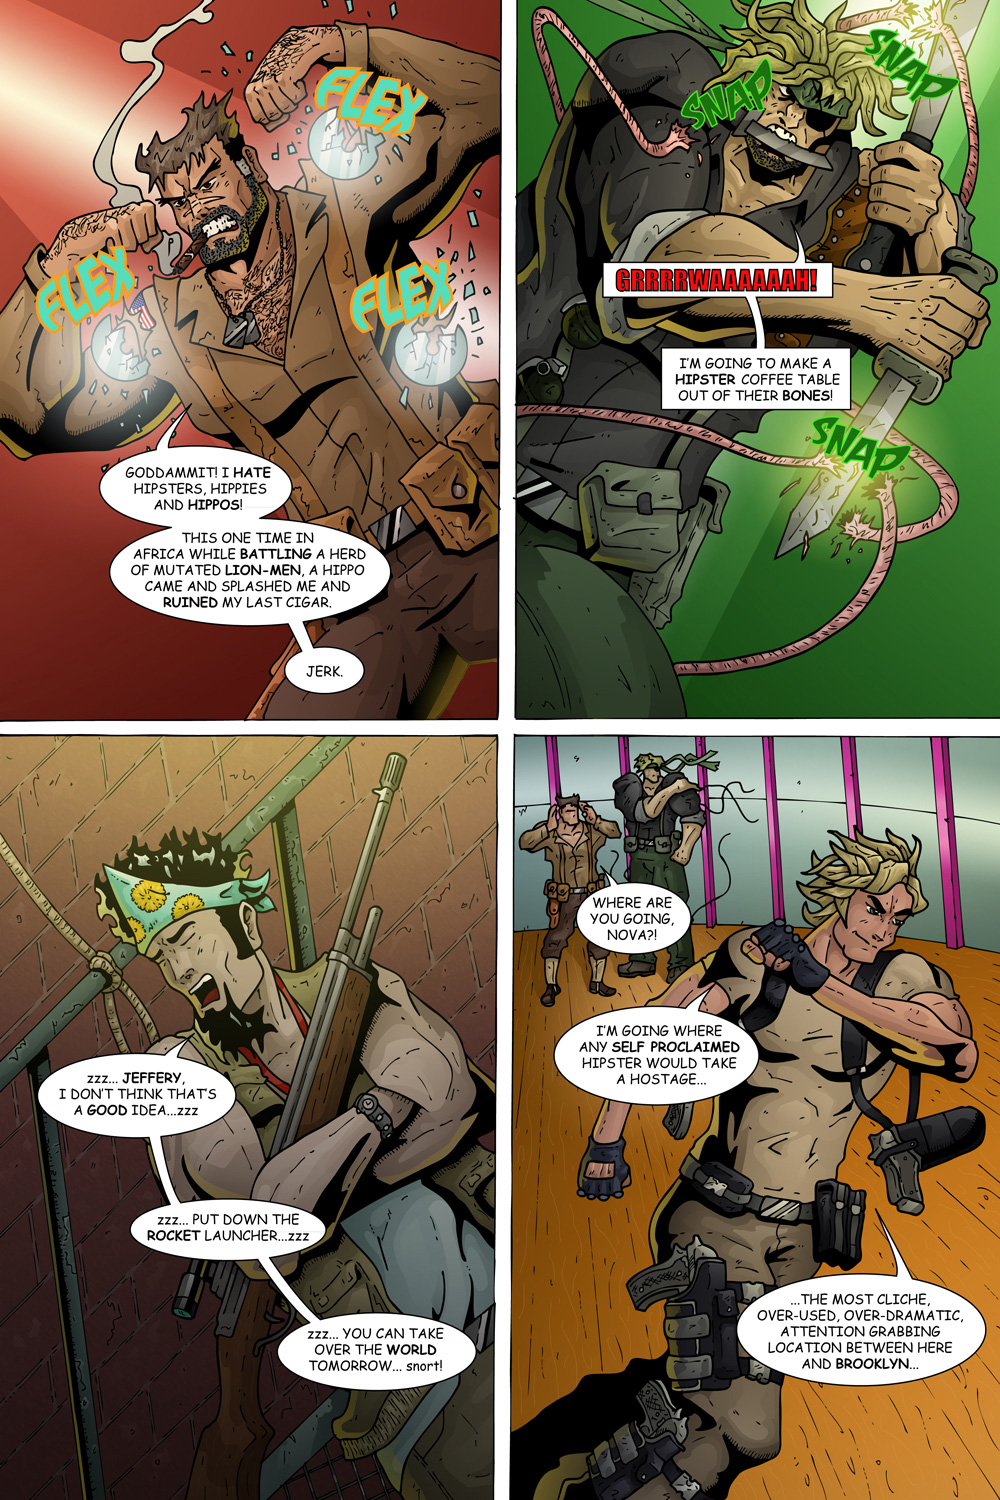 "MISSION 004: PAGE 15 ""PUT DOWN THE ROCKET LAUNCHER"""